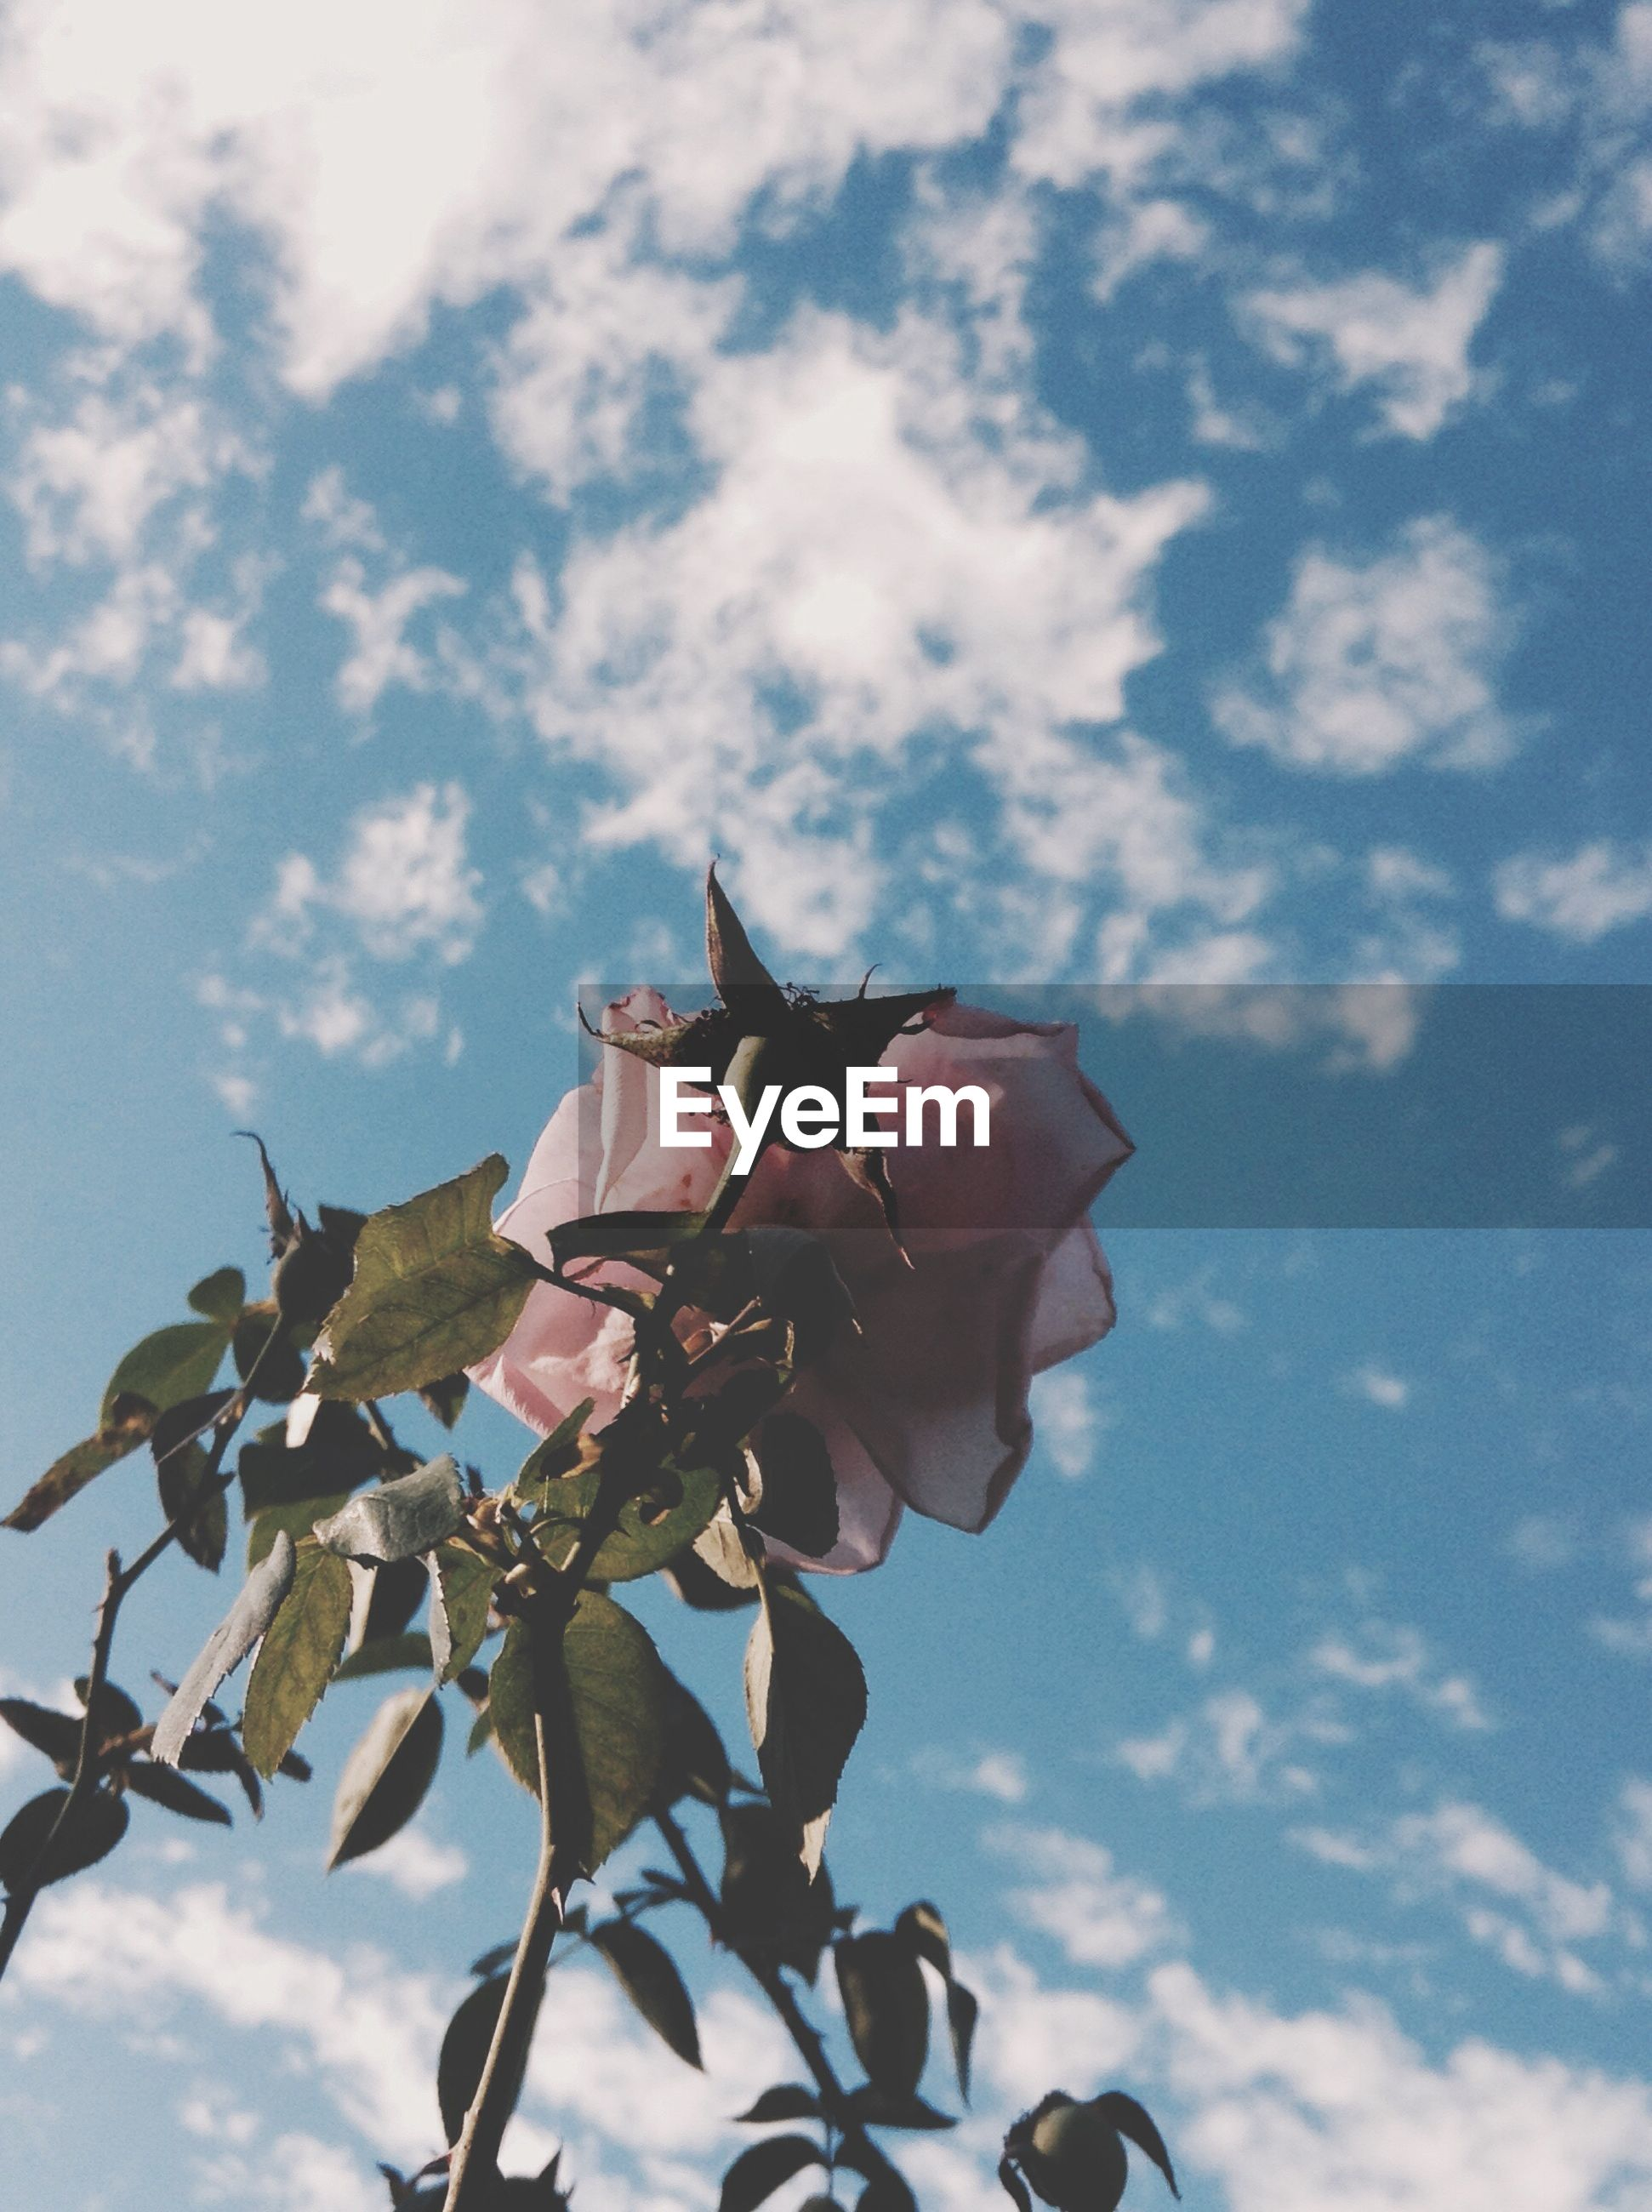 cloud - sky, flower, sky, nature, low angle view, day, petal, growth, outdoors, beauty in nature, no people, leaf, pink color, fragility, plant, flower head, freshness, blooming, close-up, tree